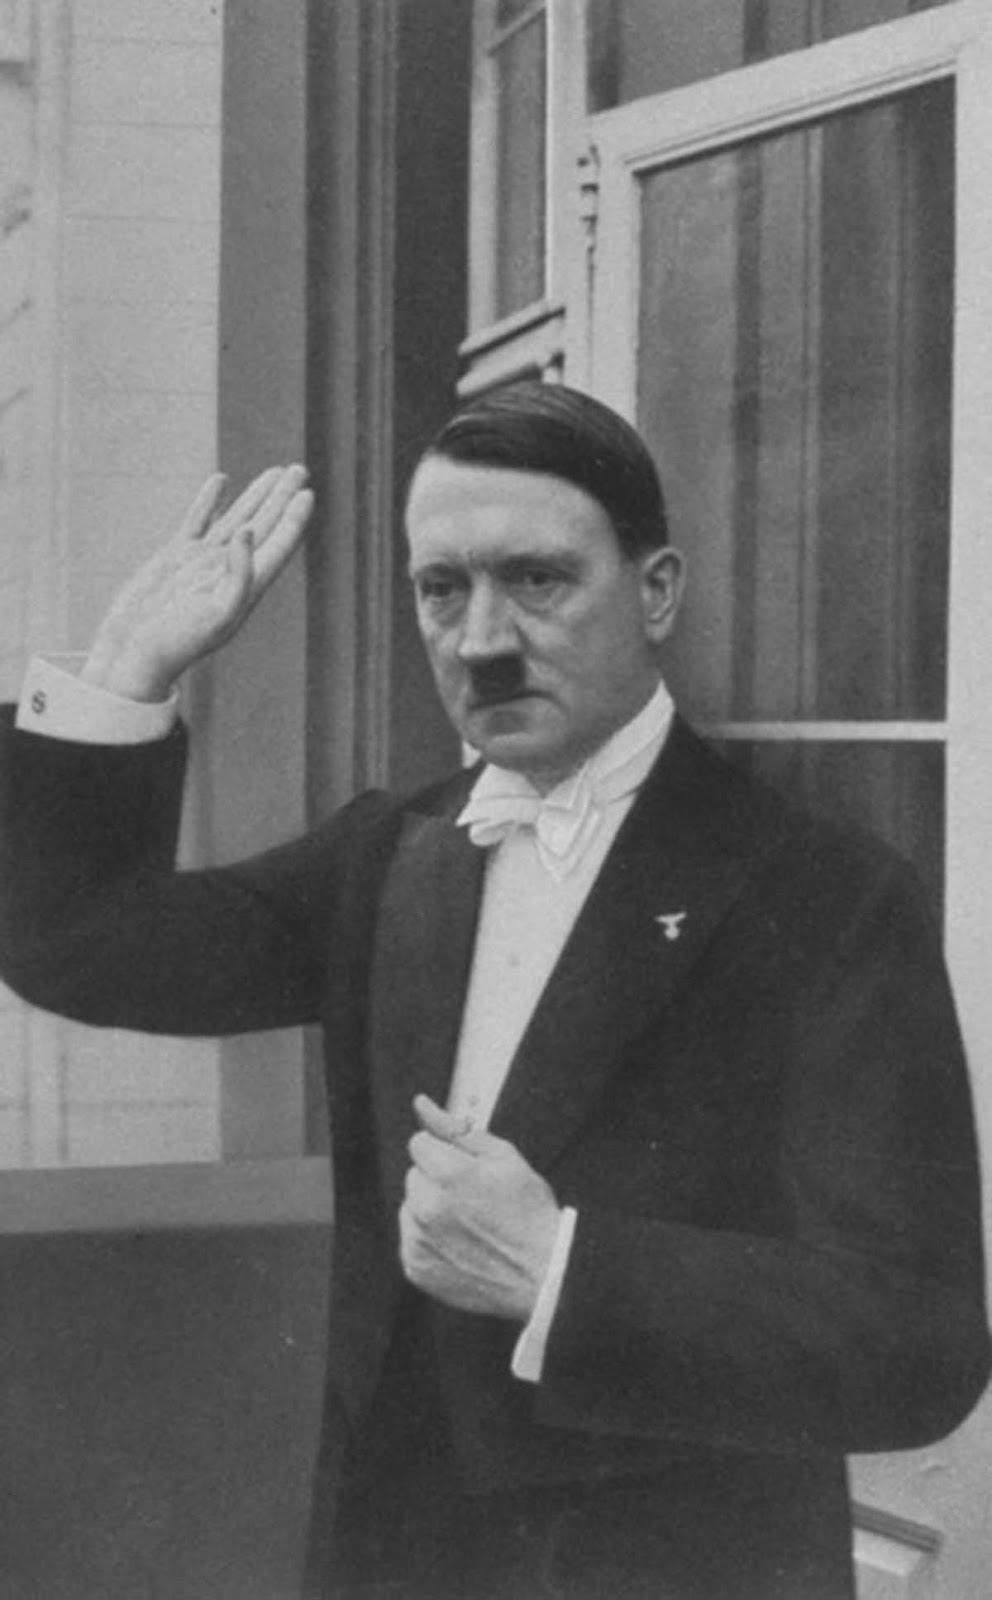 Hitler wishing his guests a happy new year on New Year's Eve 1936. Not exactly showing a lot of warmth without Eva around. He went back inside after this and called her.